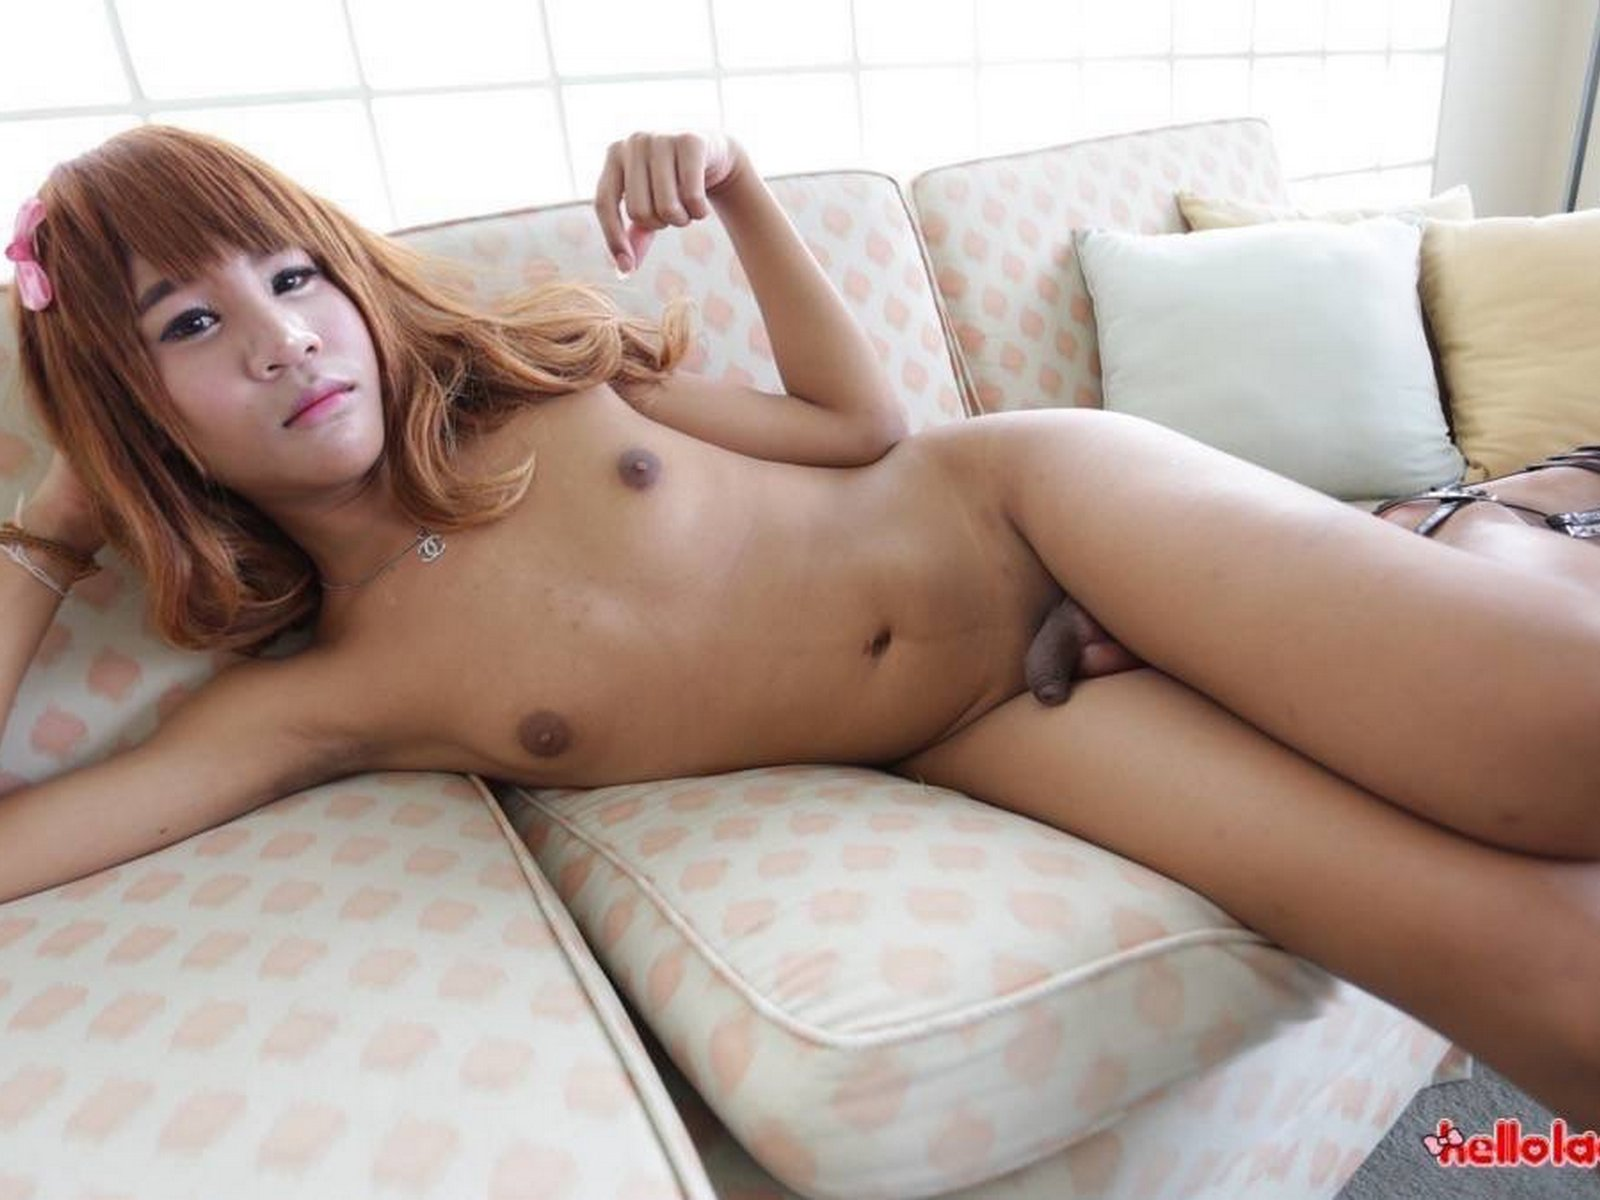 I Want To Suck A Ladyboy